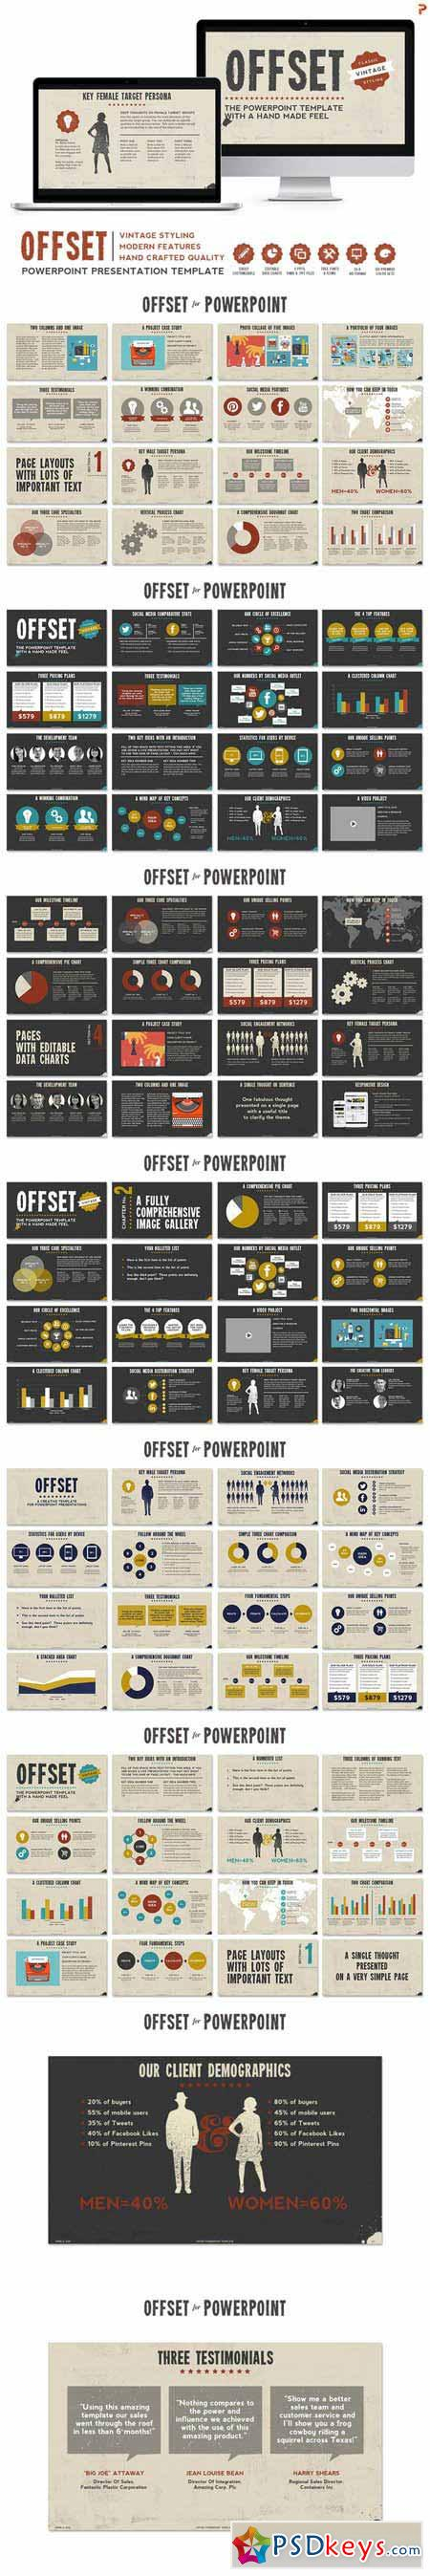 Offset Powerpoint Template 471899